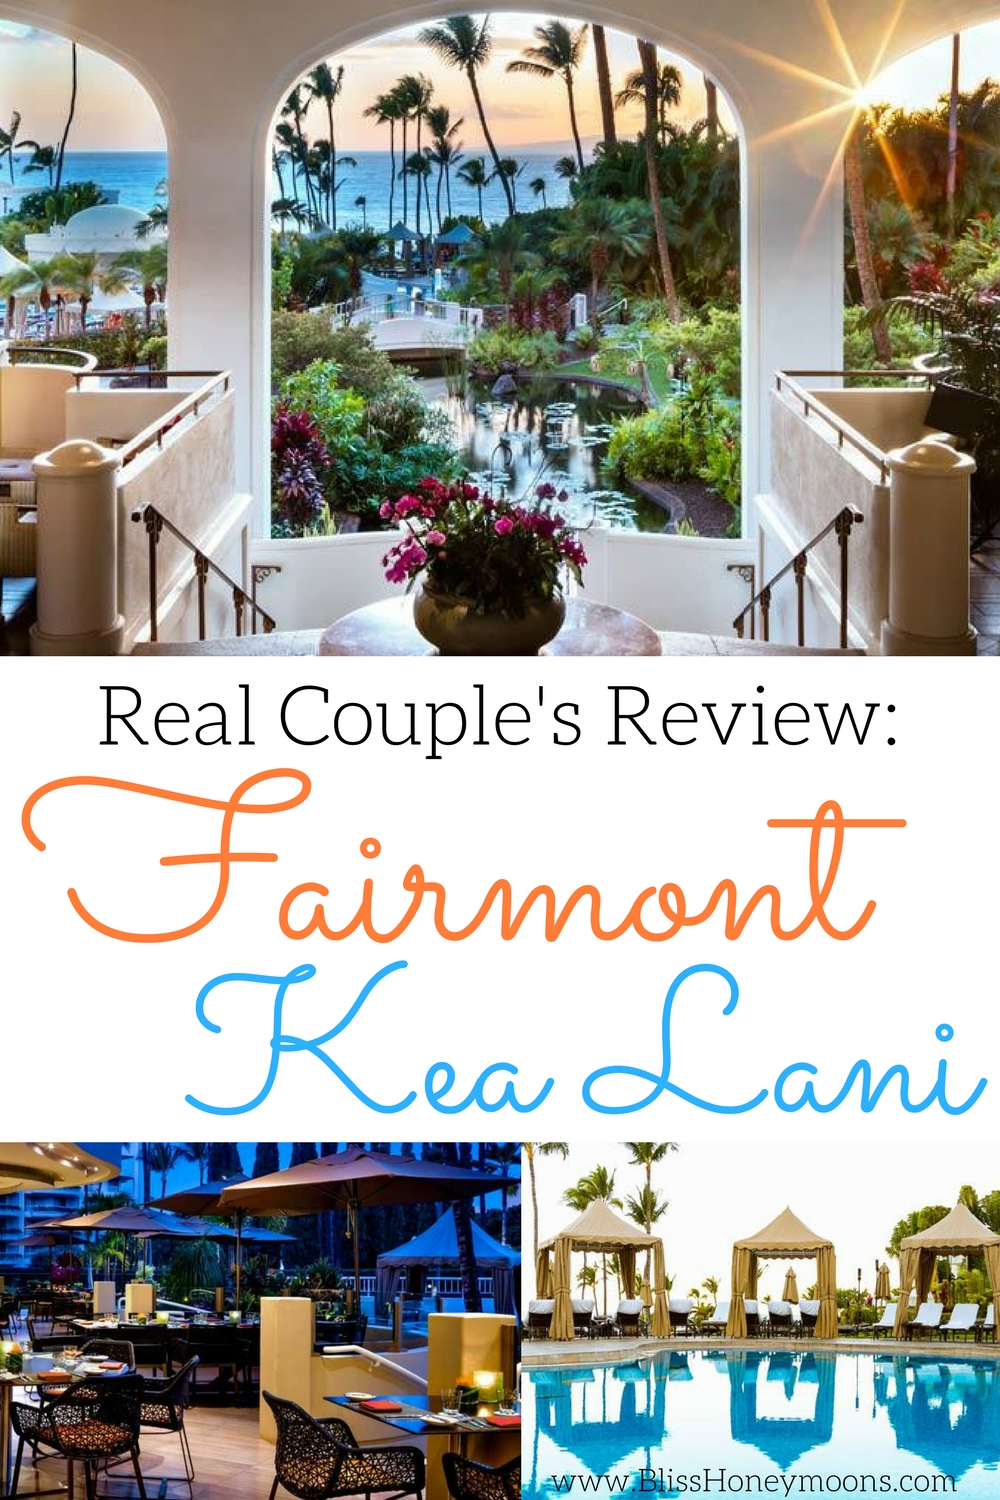 Fairmont Kea Lani review, real couples review Fairmont Kea Lani, Fairmont Kea Lani honeymoon, best destination honeymoon, best Hawaii honeymoon, best destination wedding travel agent